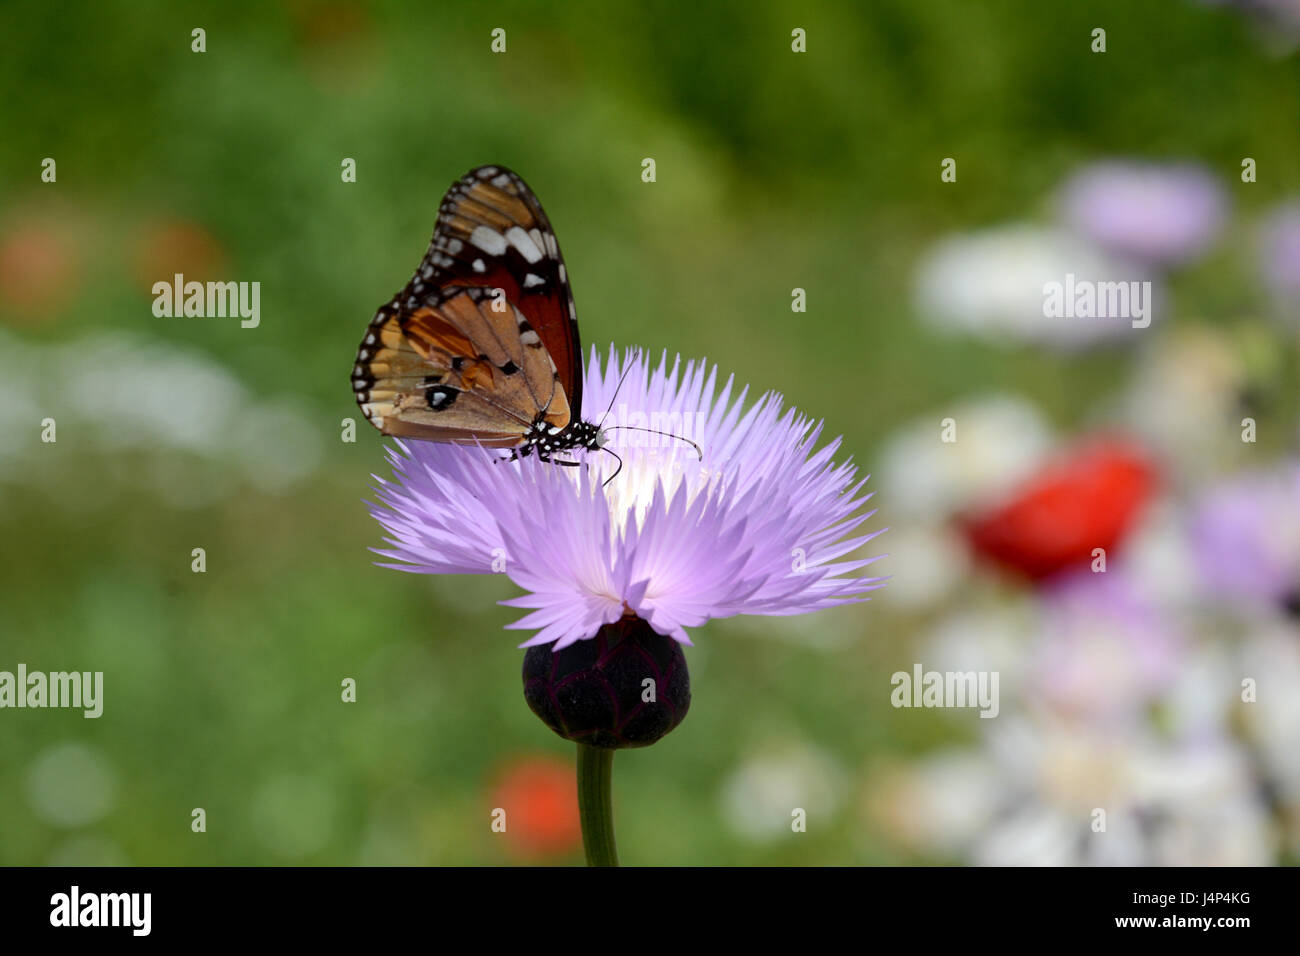 BUTTERFLY SUCKING ELIXIR - Stock Image